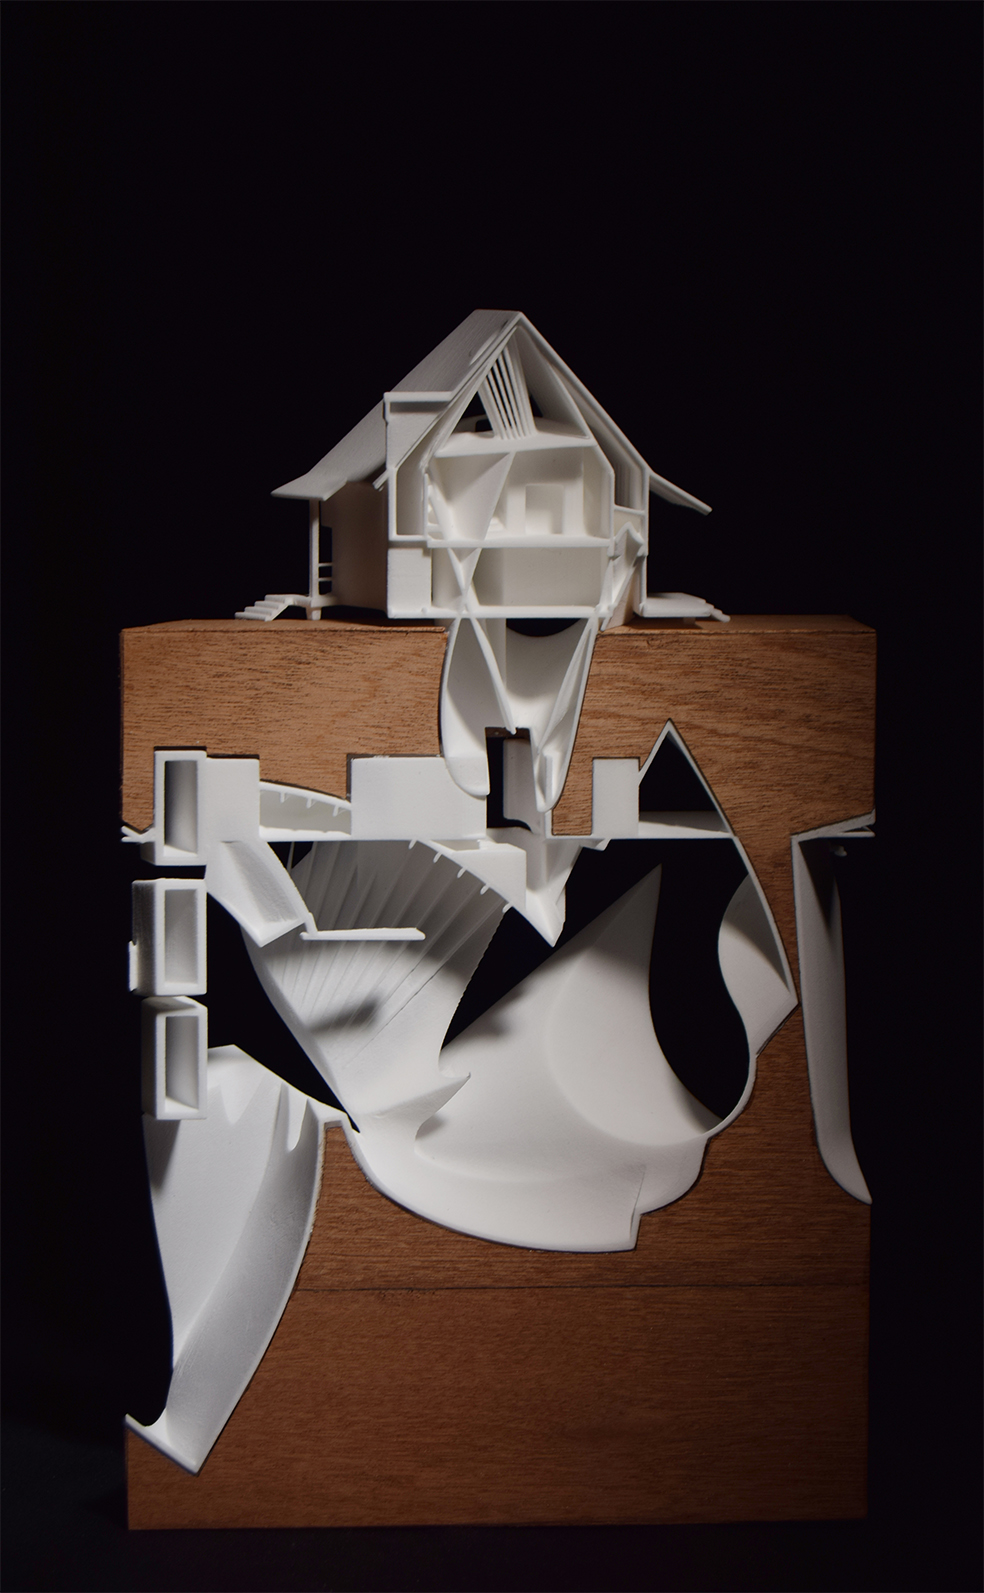 The house of ambiguity space and paper 3d print wood veneer house model house of leaves space and paper jeuxipadfo Gallery